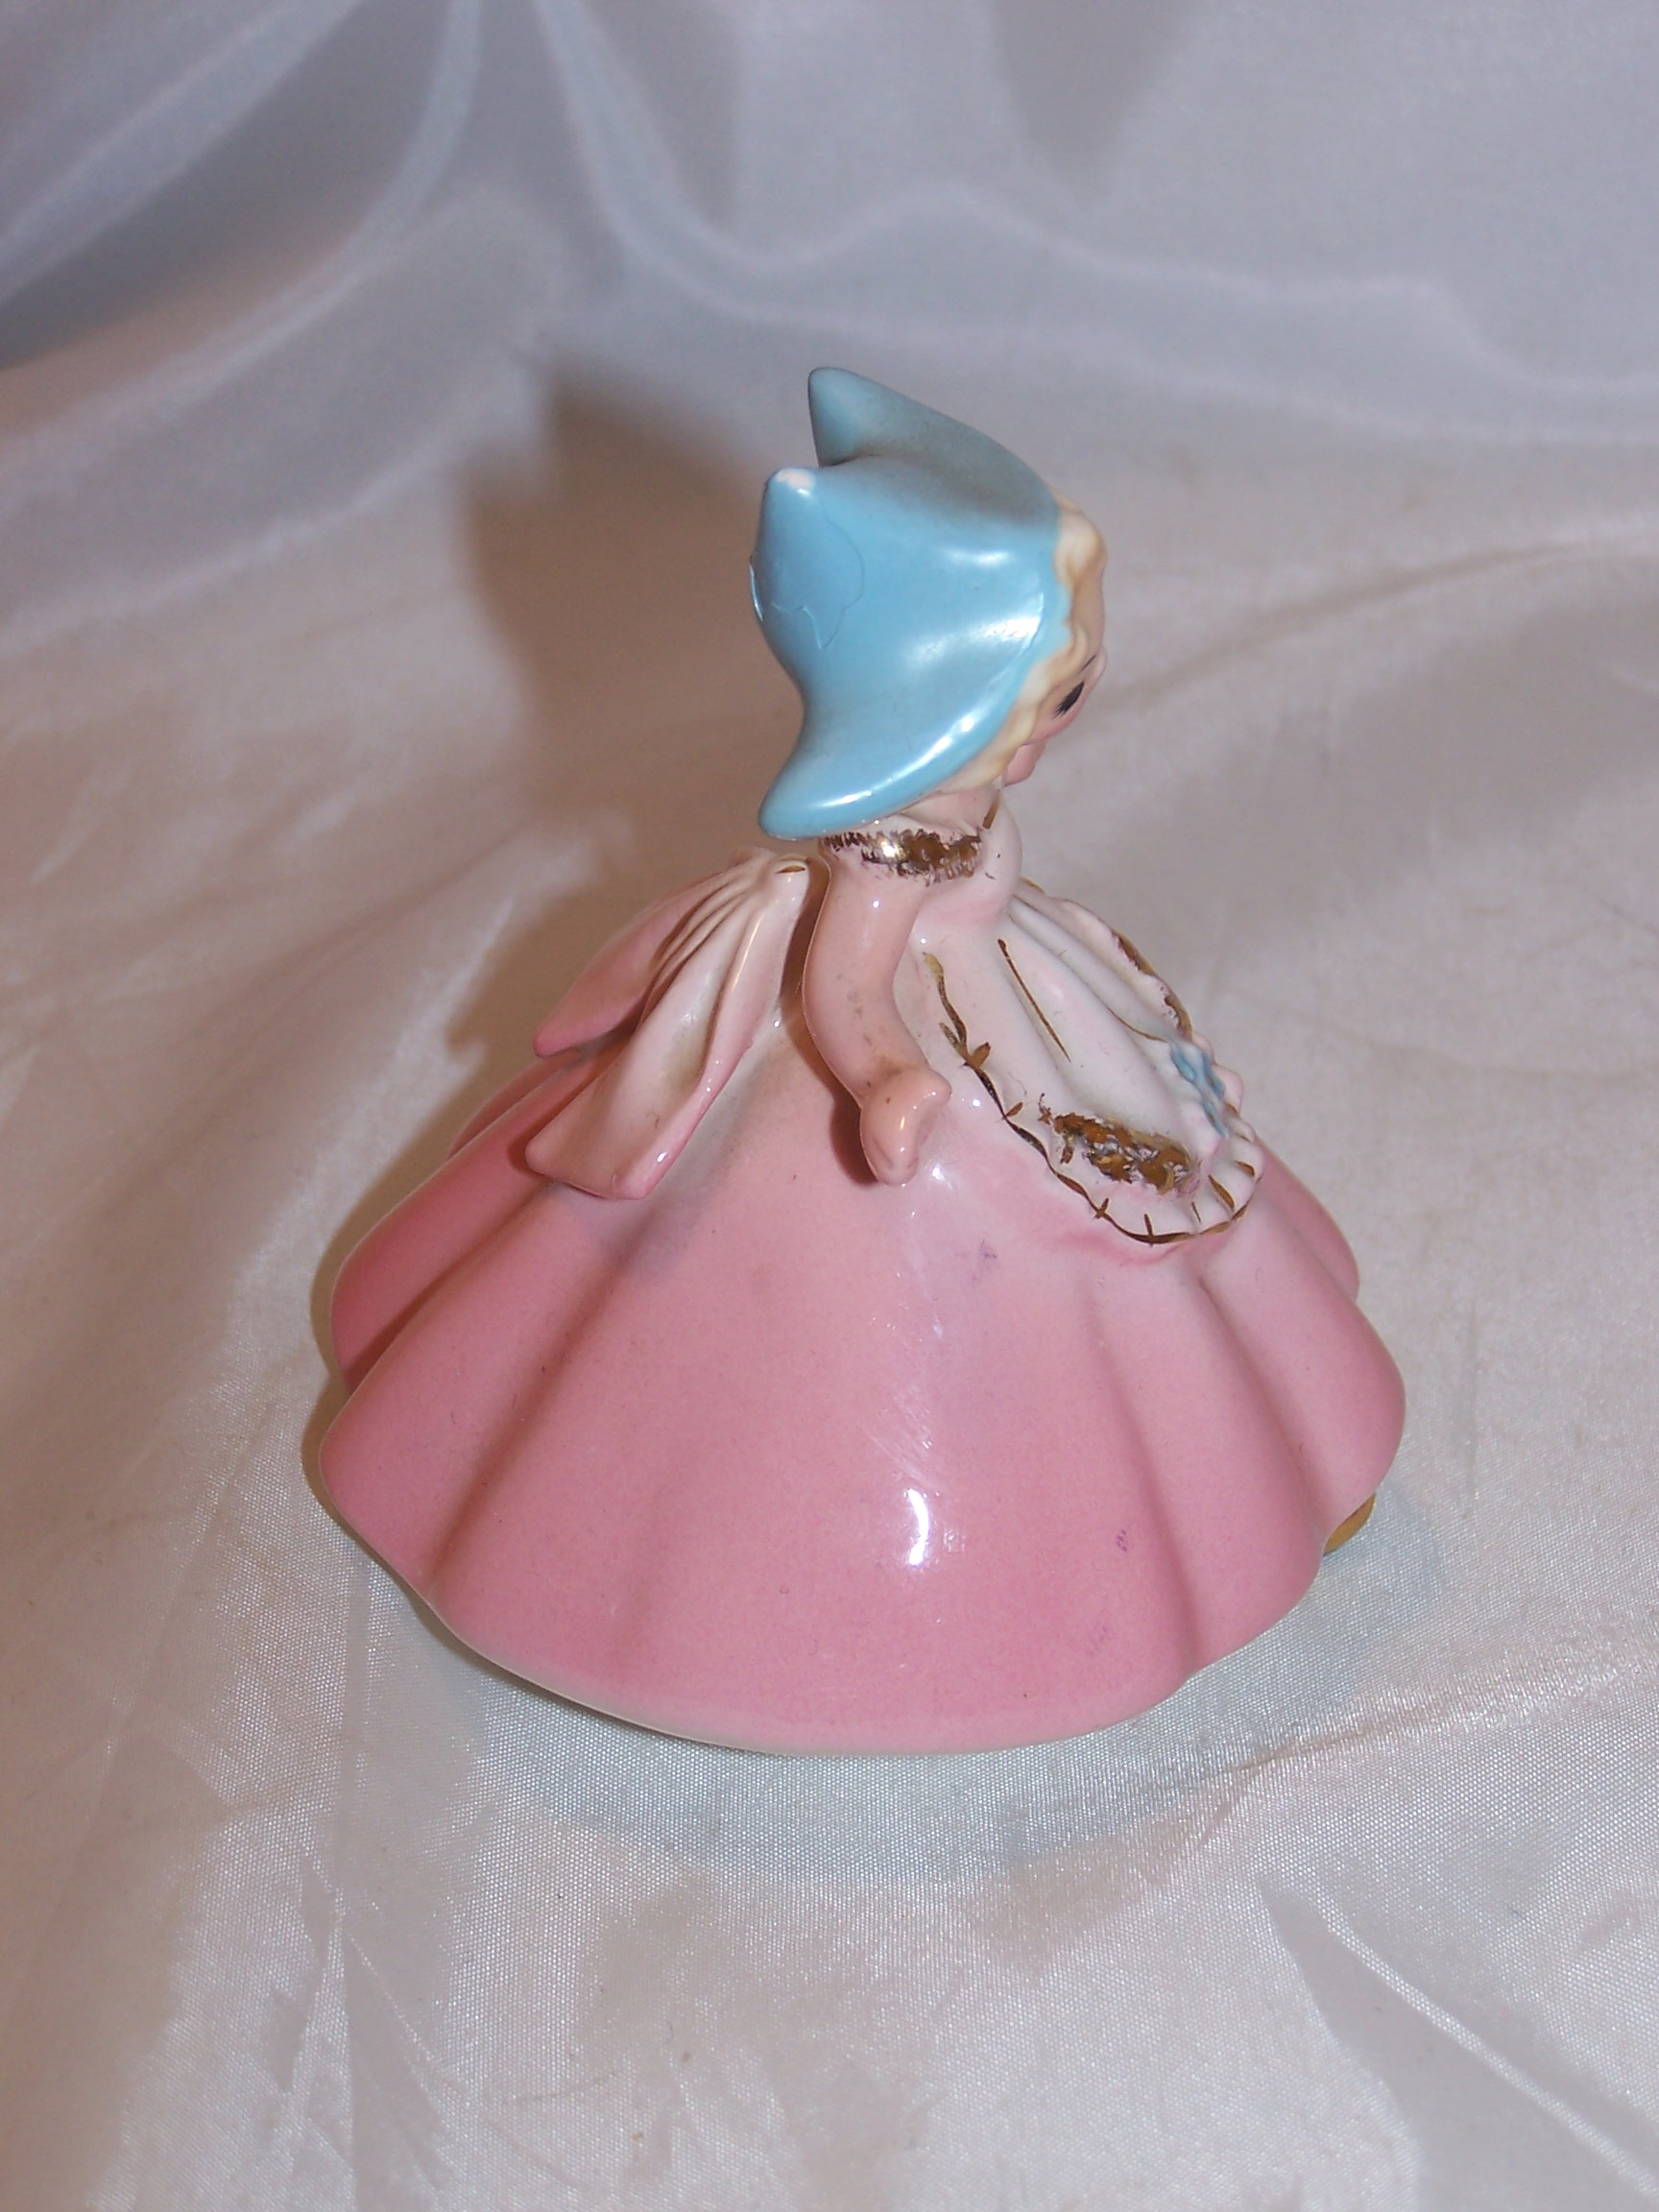 Image 3 of    Josef Originals Dutch Girl in Pink Dress Figurine, Japan